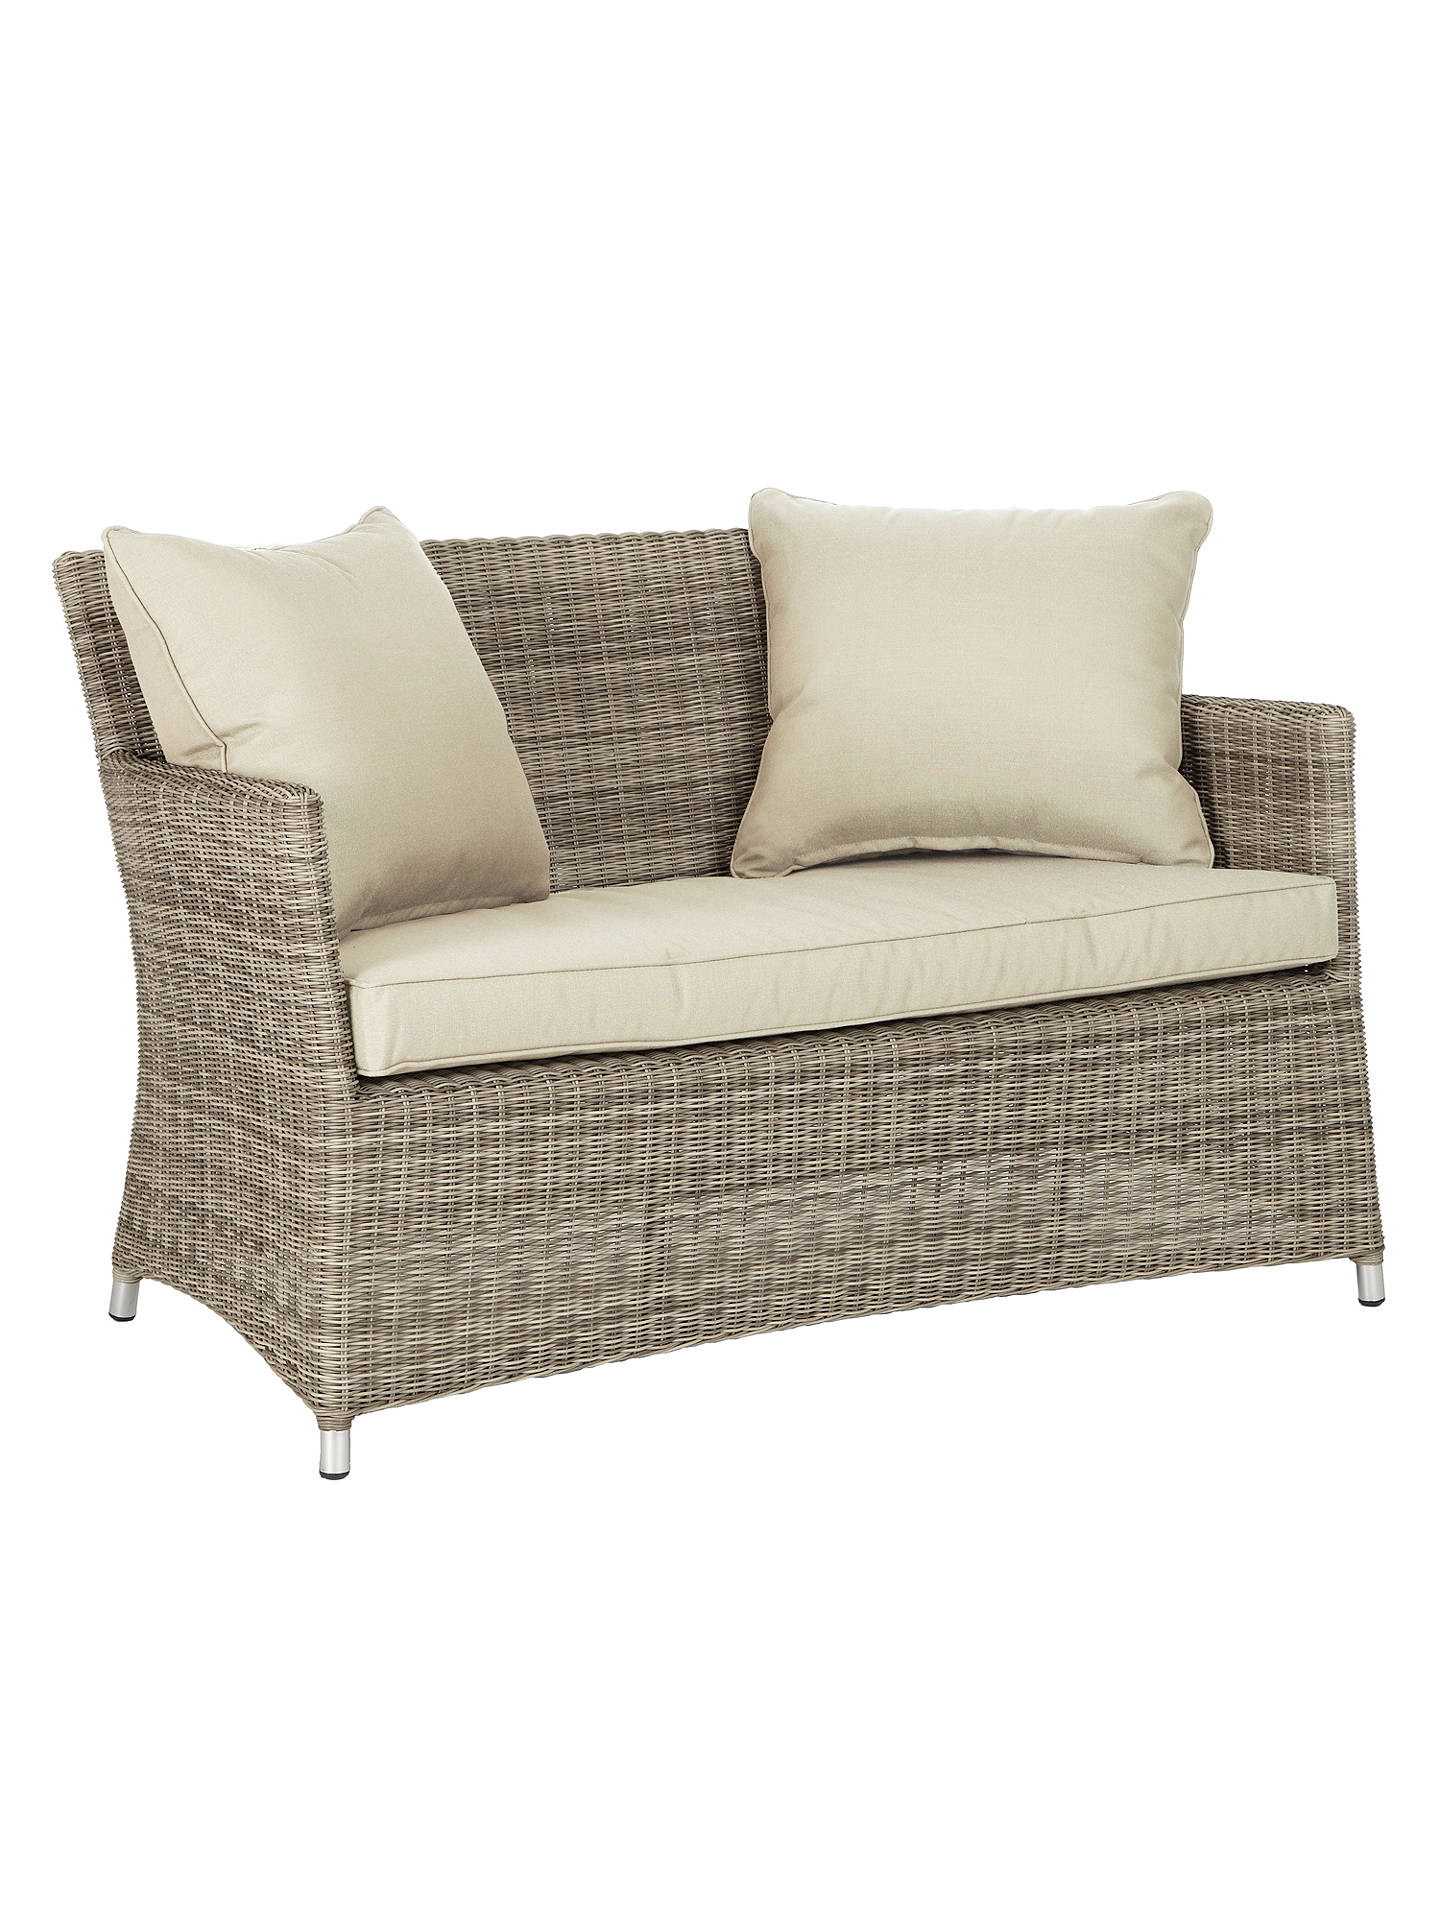 John Lewis & Partners Dante 2 Seater Outdoor Sofa at John Lewis ...